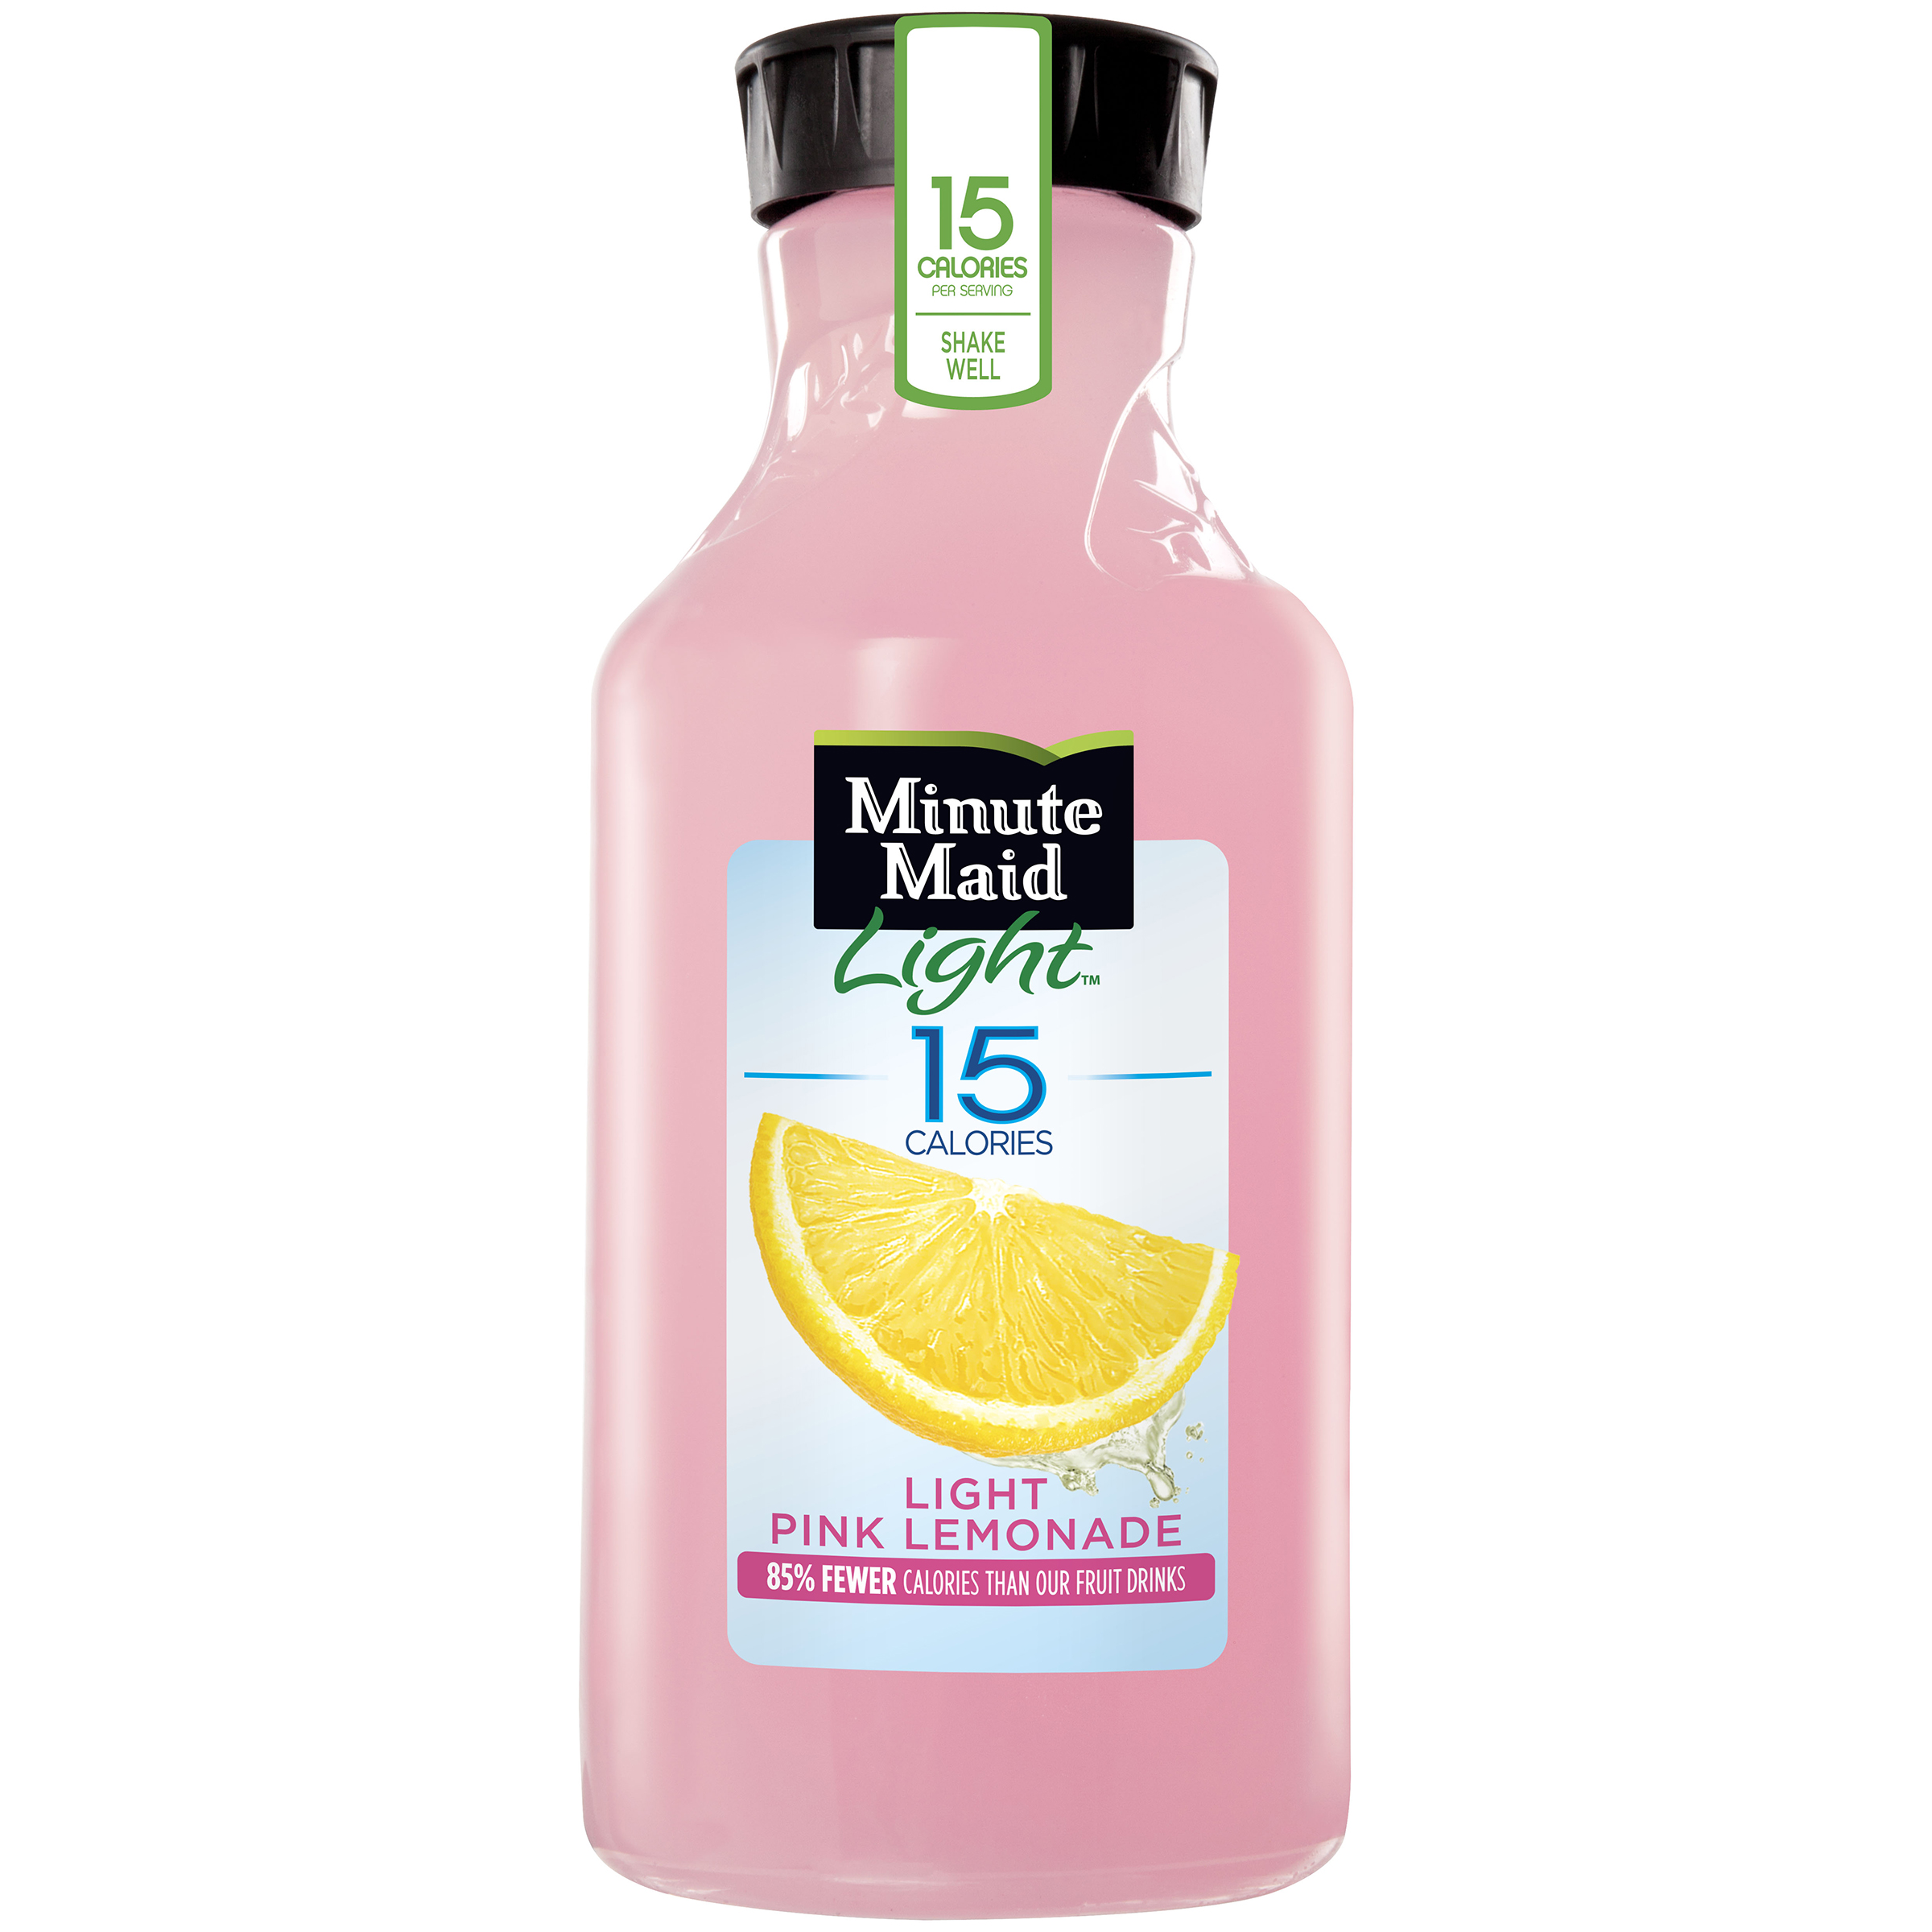 minute maid Minute maid is the no 1 fruit and vegetable juice brand in the world in terms of combined retail volume sales in 20111 classics never go out of style.